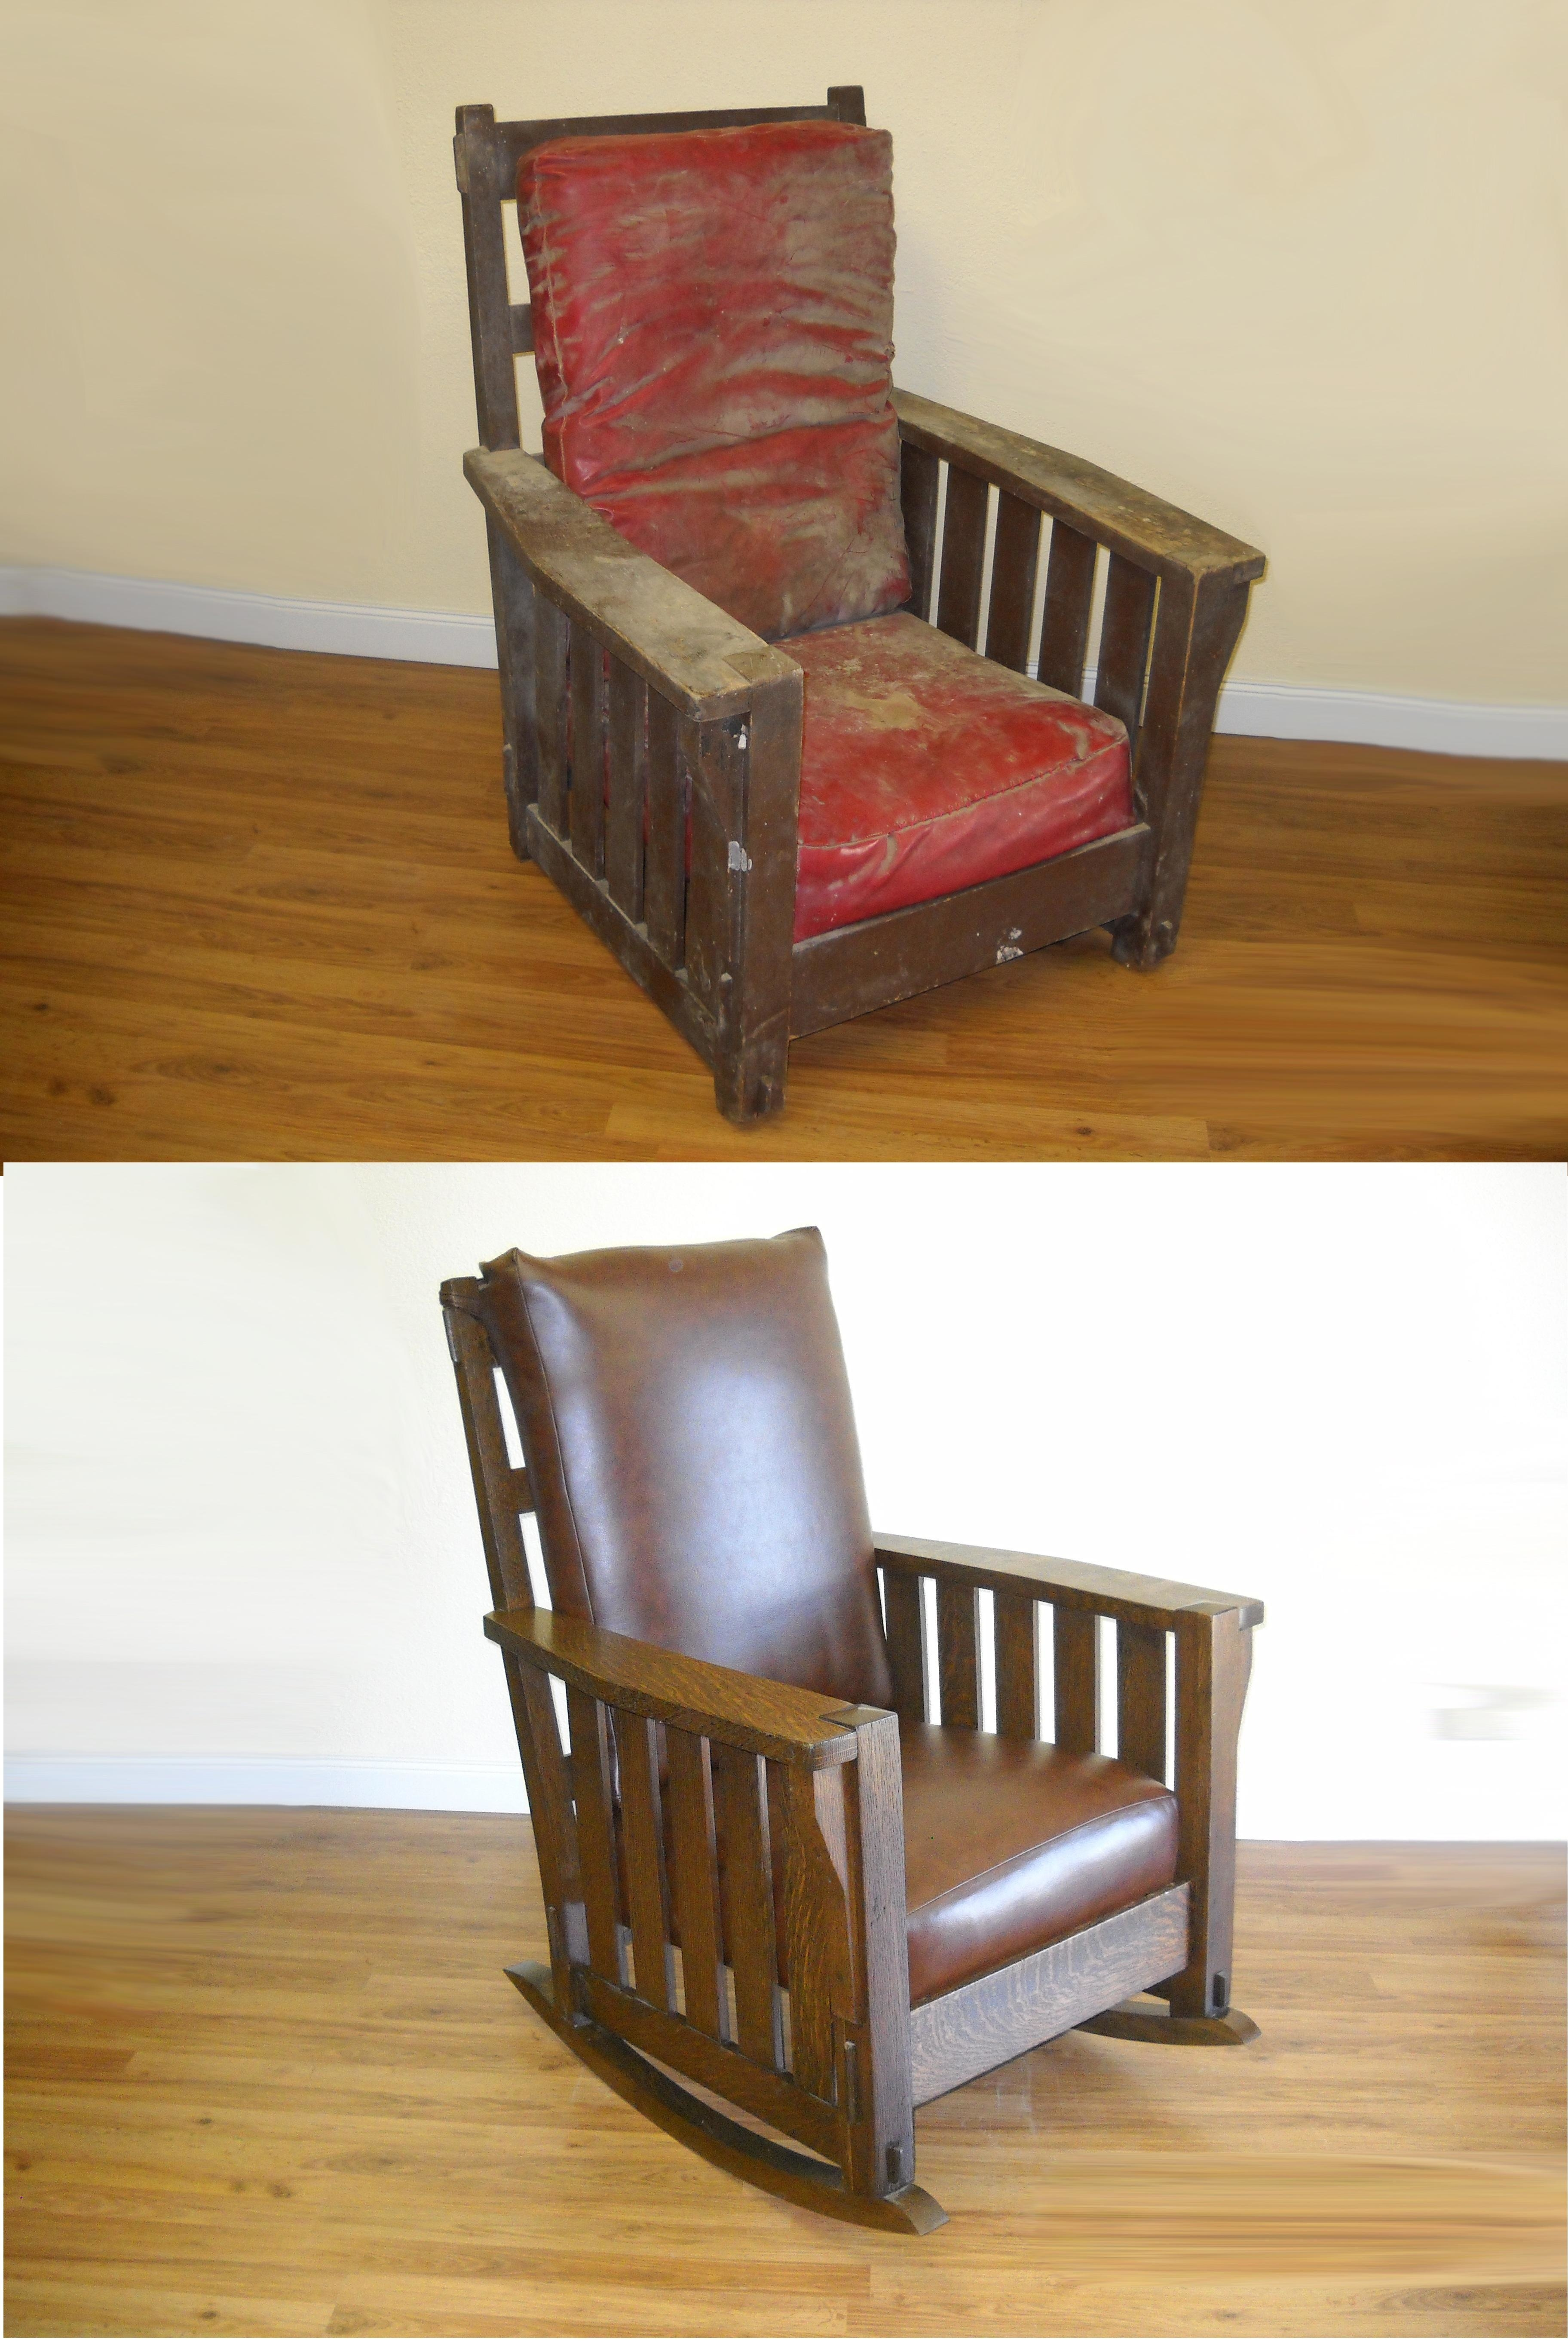 Furniture Medic By Experts - ad image